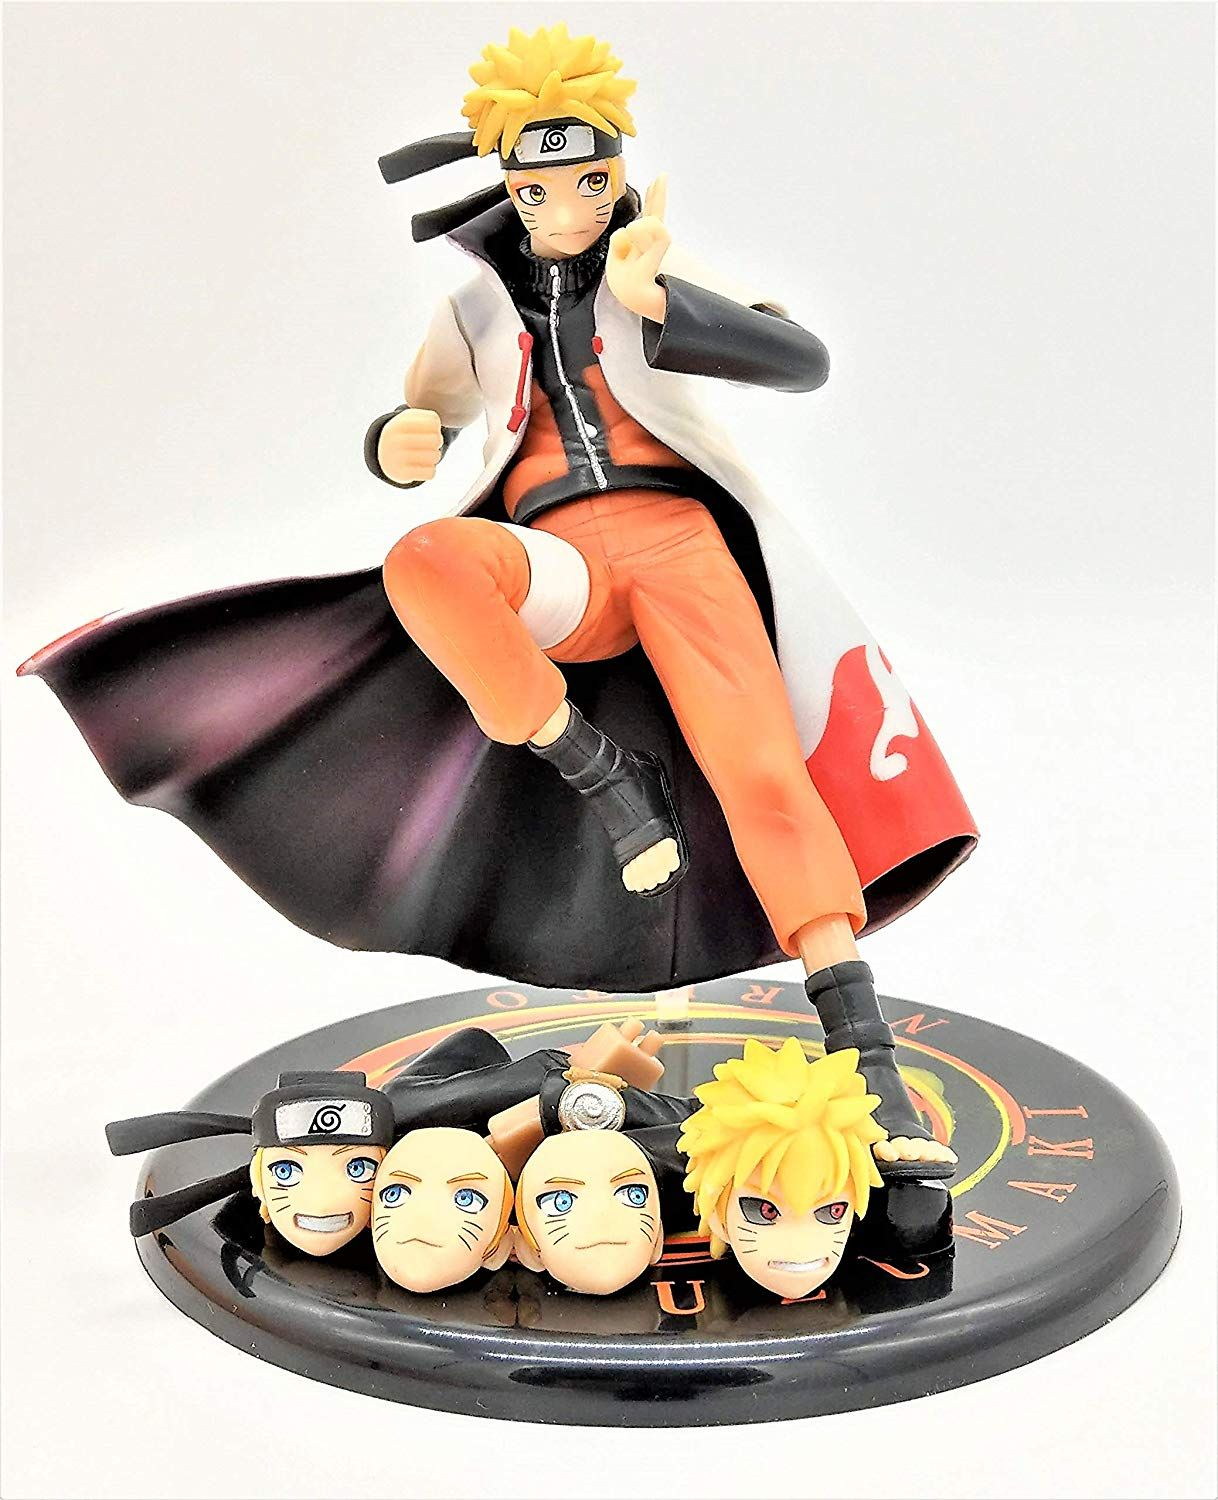 Naruto Hokage Naruto Collectible Action Figure 5 In 1 Comes With